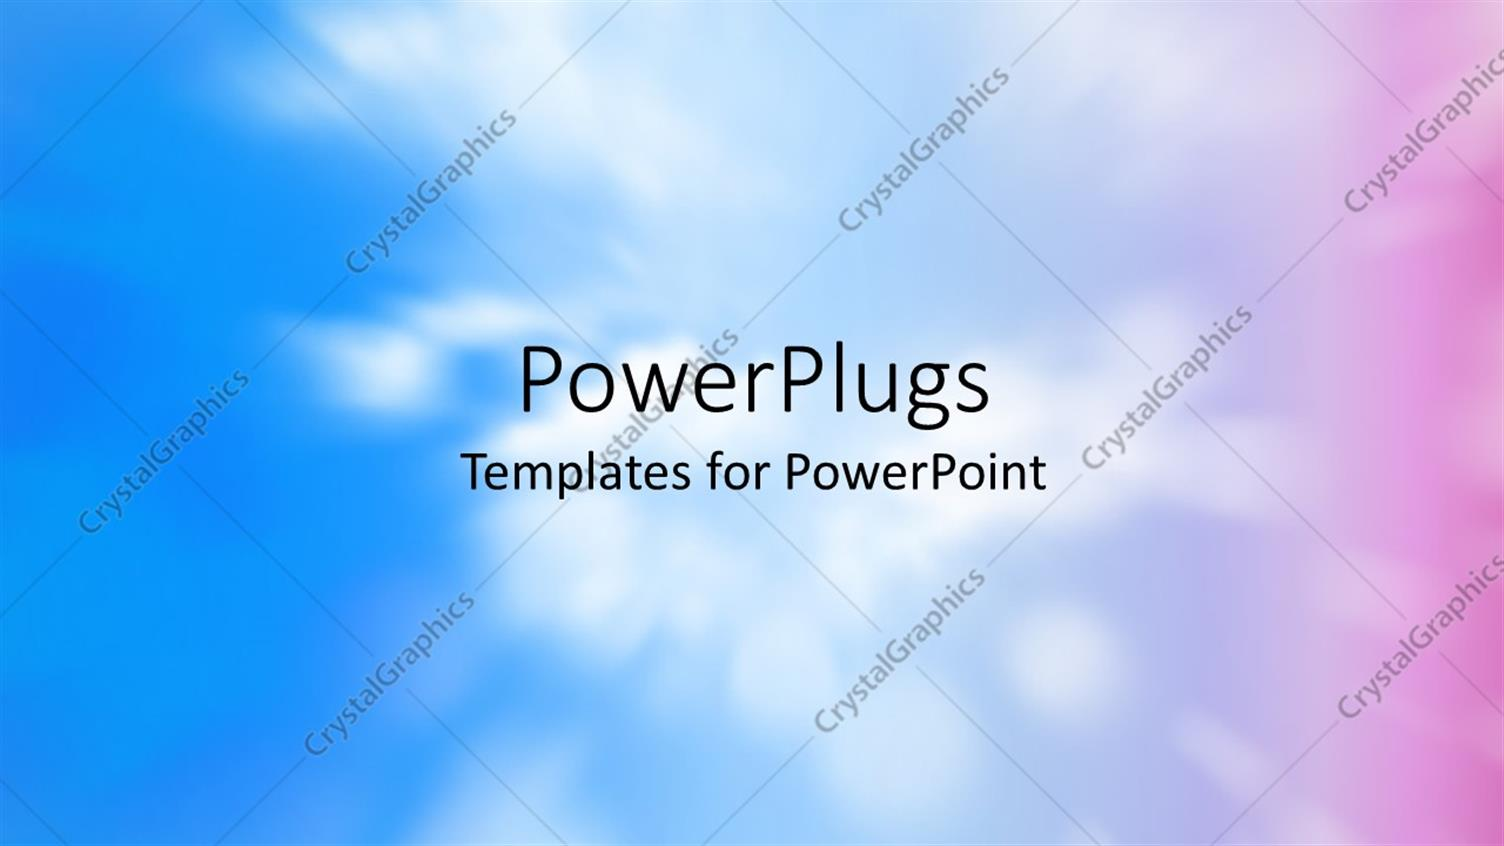 PowerPoint Template Displaying Colorful Abstract Decorative Background Shot Using the Zoom Effect of Clouds in the Sky